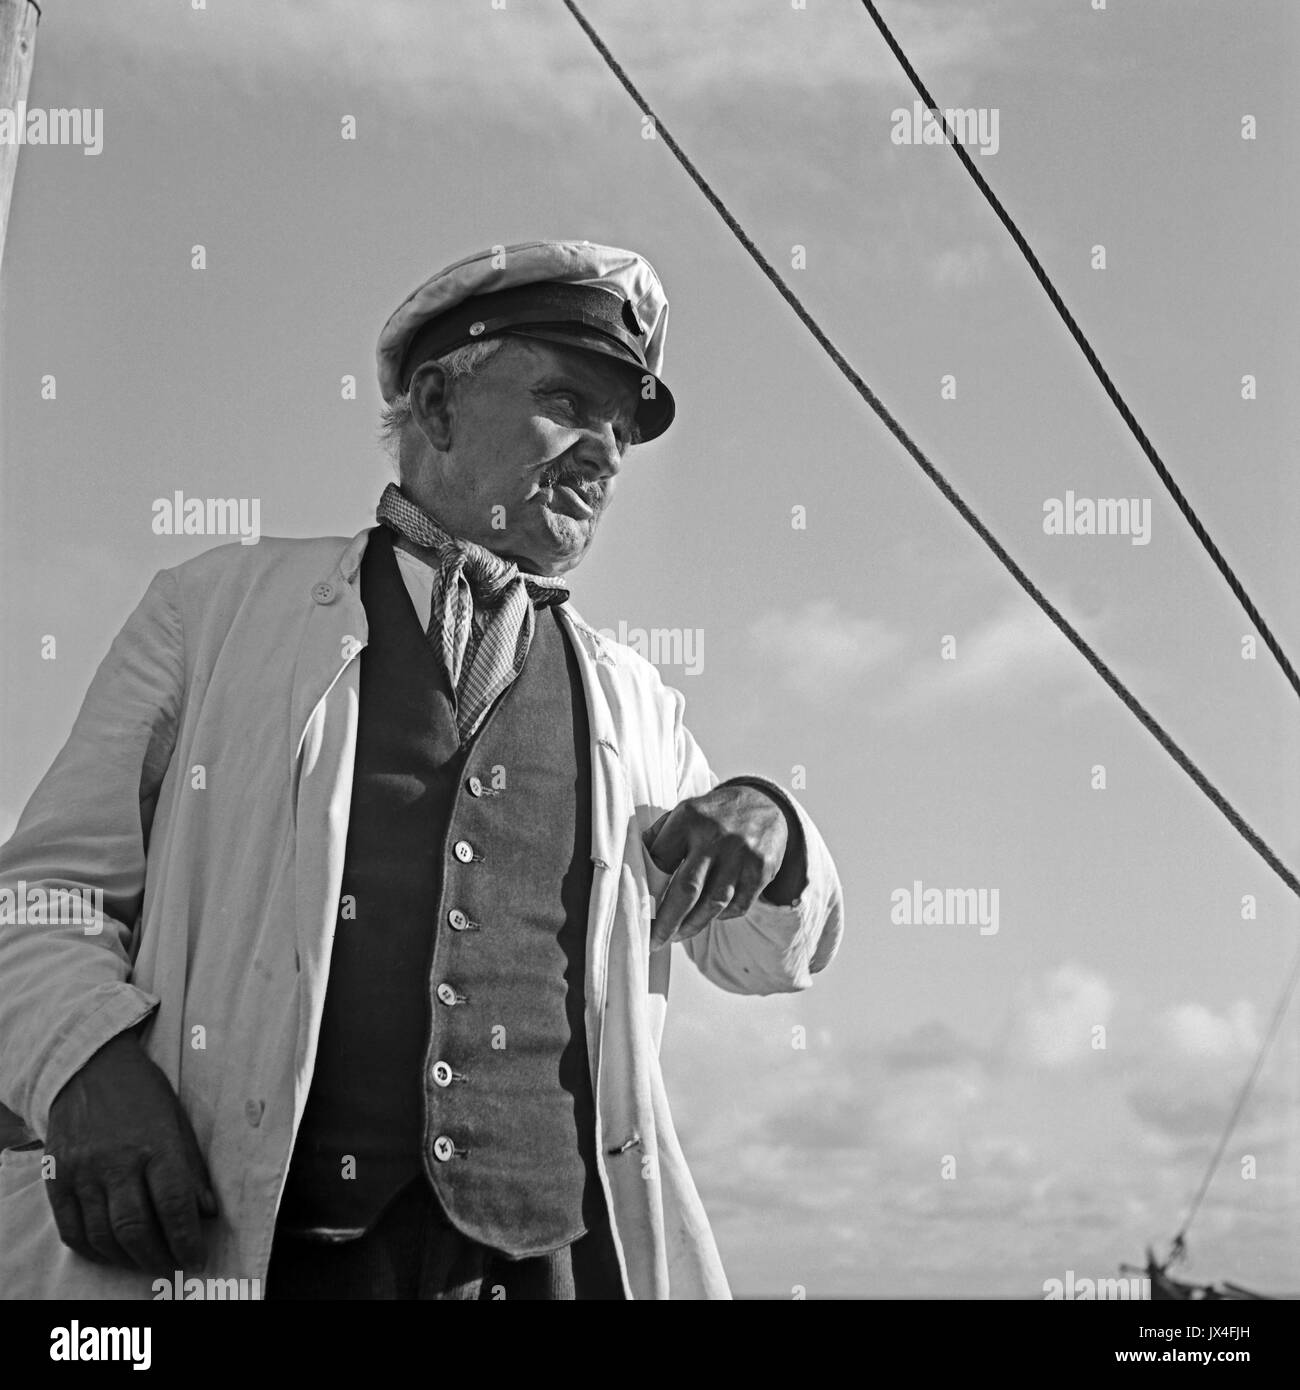 Portrait of sea captain. - Stock Image